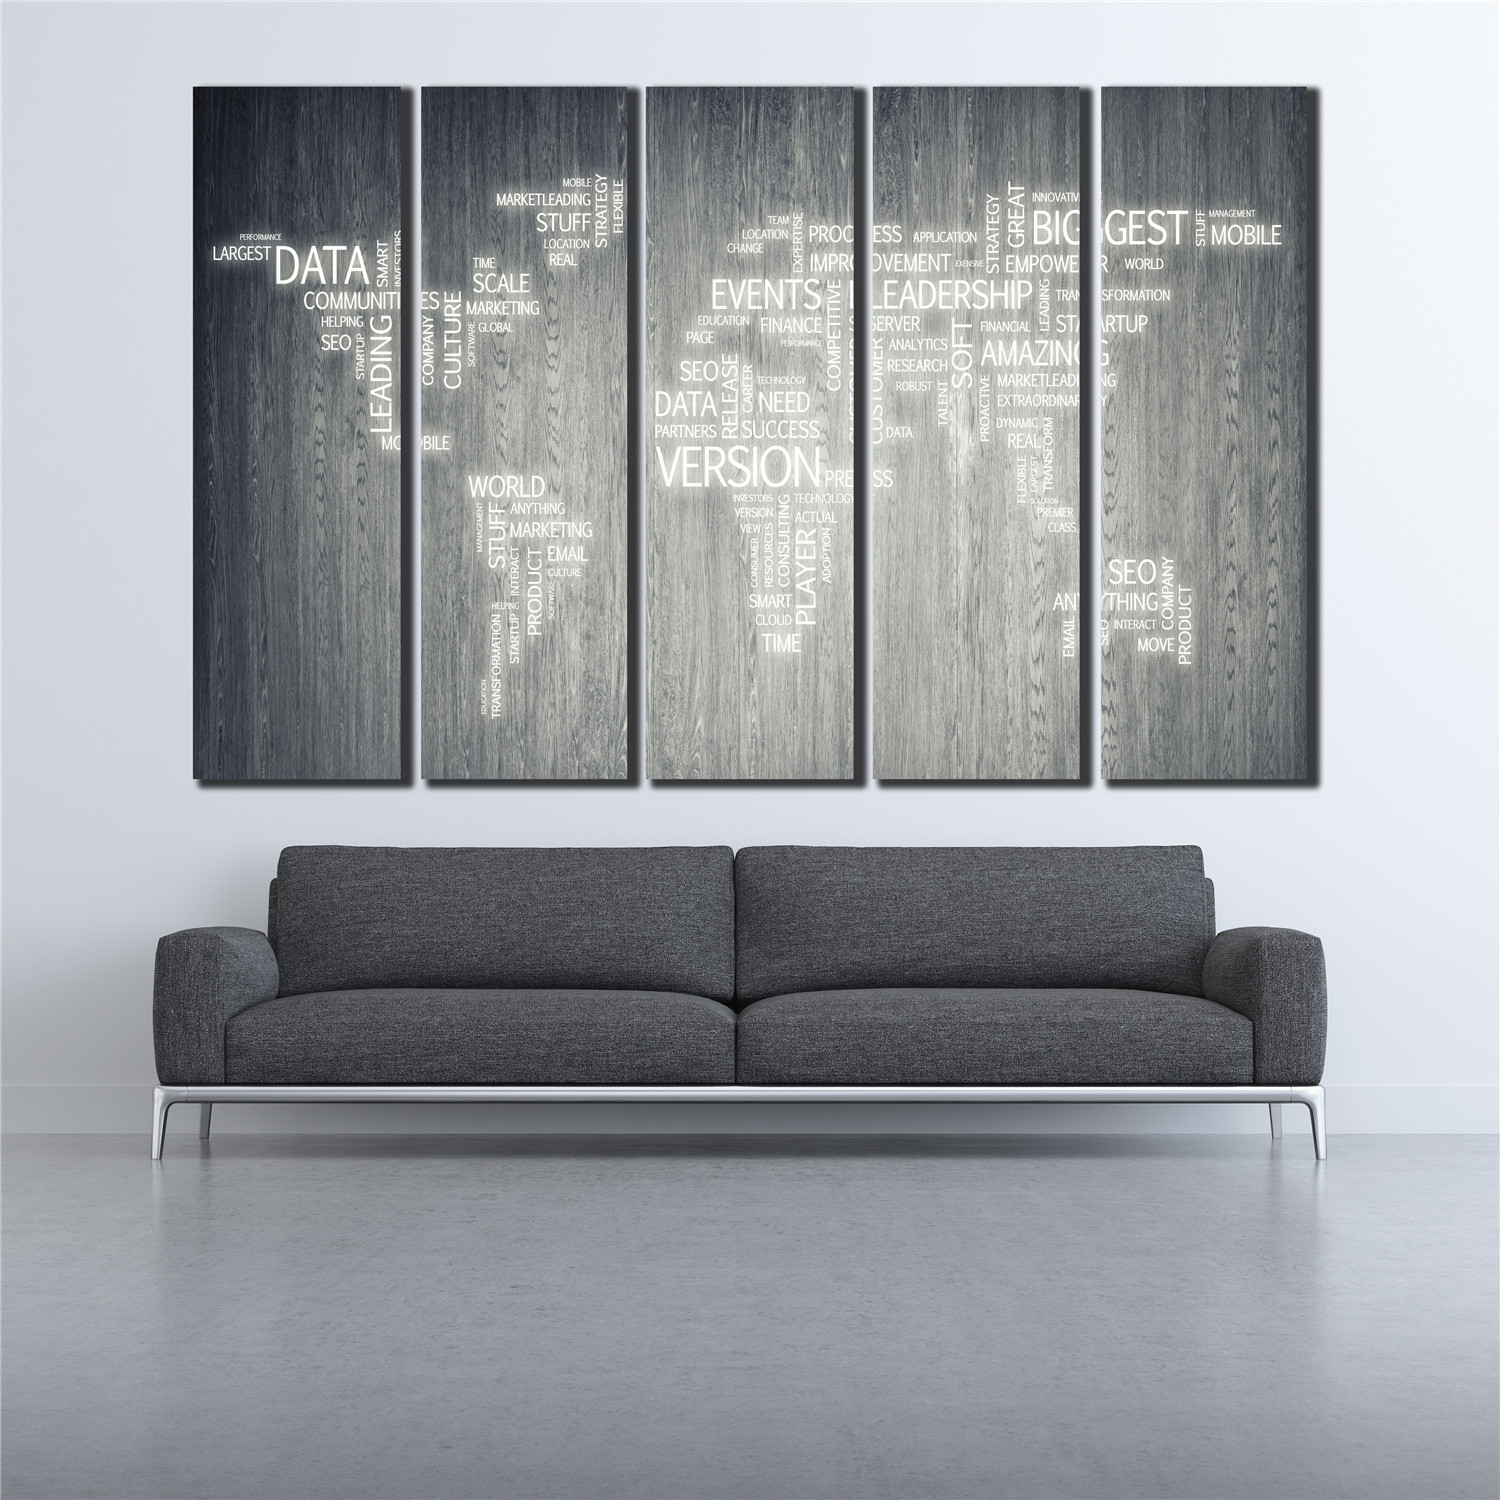 5 panel wall art canvas painting world map make up of letters 5 panel wall art canvas painting world map make up of letters posters pictures modular art picture for pub bar pictures wl 049 in painting calligraphy gumiabroncs Images